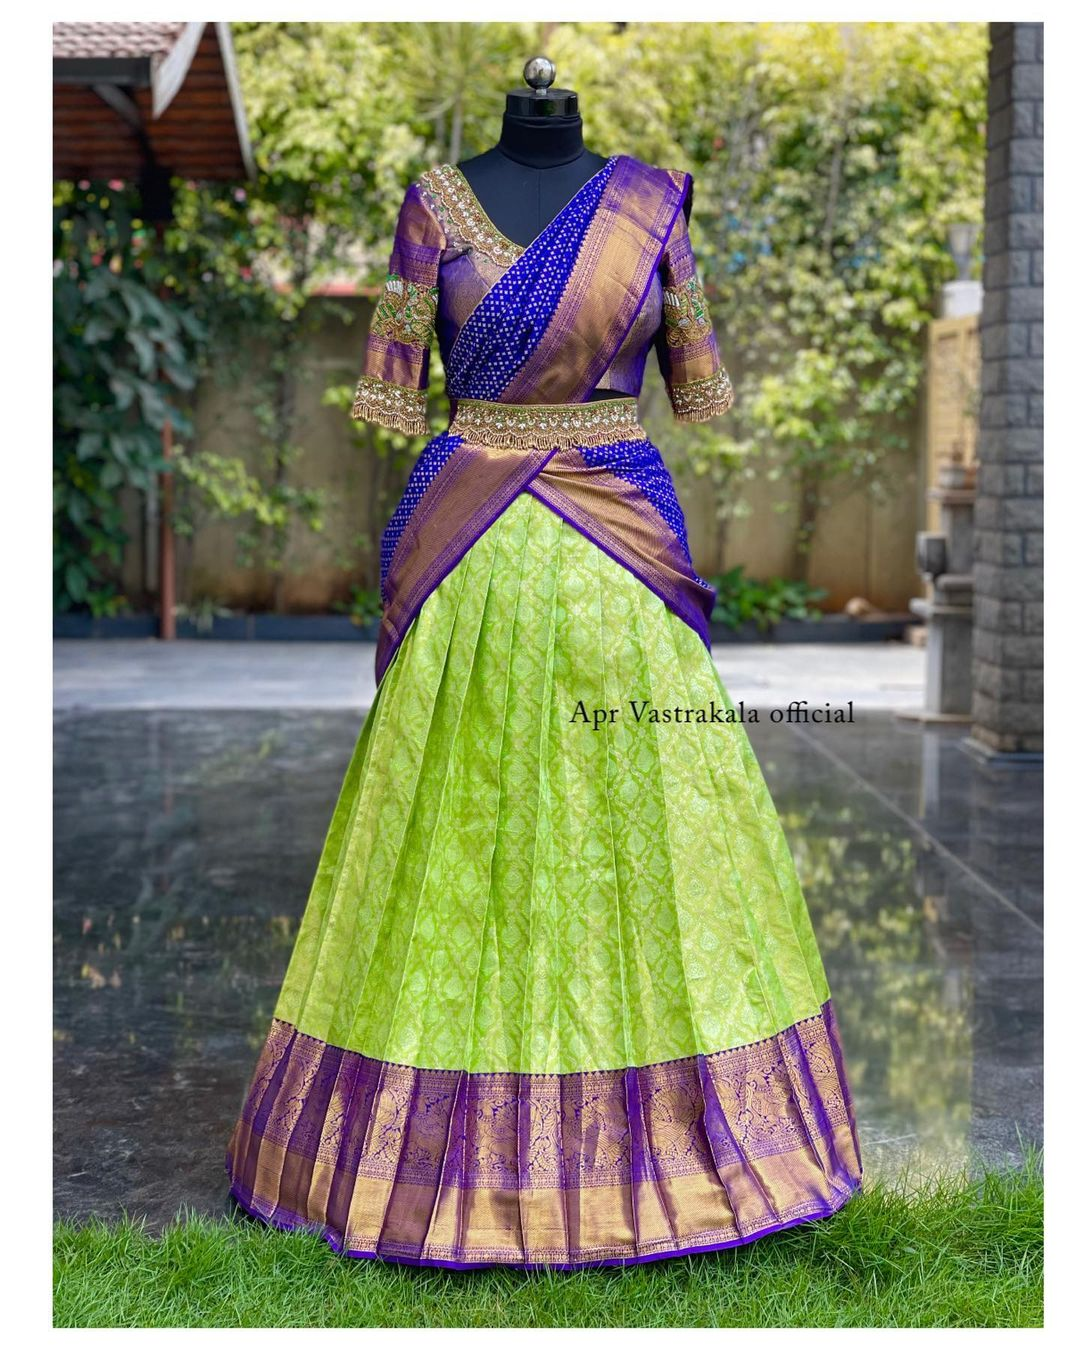 Stunning parrot green and blue color combination pattu langa and blouse with pattu dupatta. Blouse with embroidery work. Traditional halfsaree.   2021-08-06